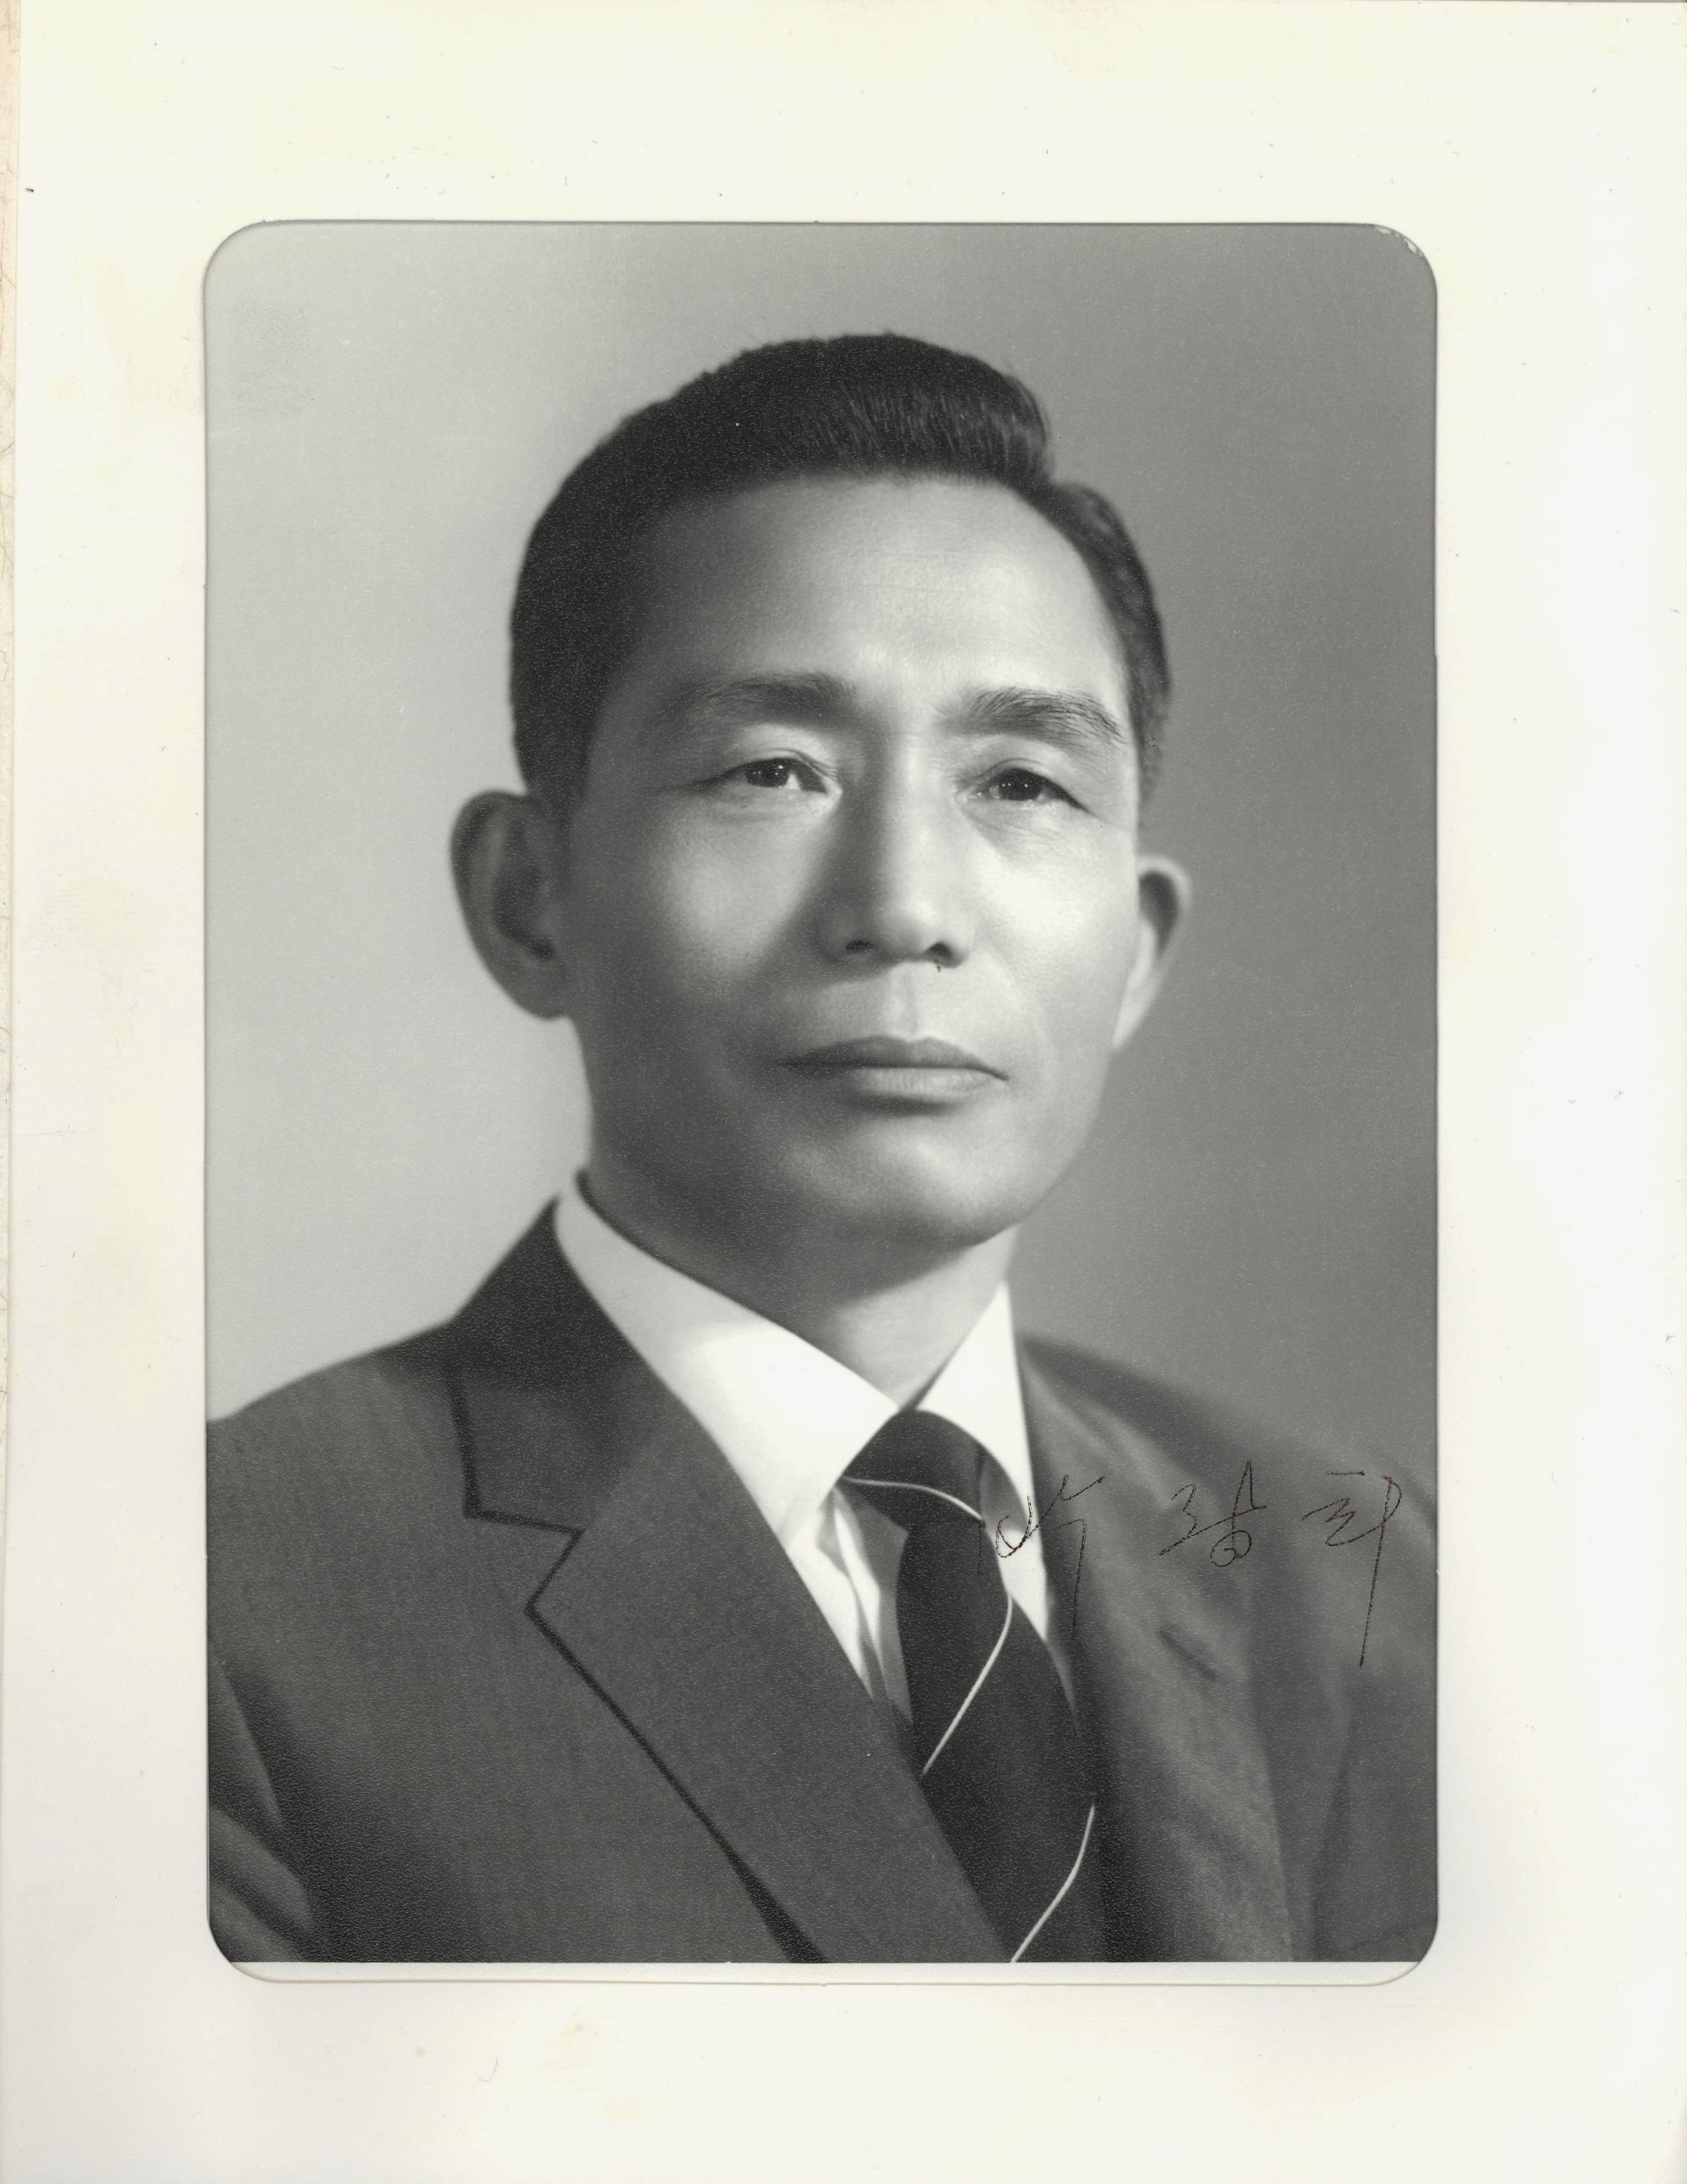 an introduction to the life of president park chung hee Reassessing the park chung hee era, 1961-1979 development, political thought introduction download pdf pp 3-16 there is a good deal of research on the political leadership and ruling ideas of president park chung hee.